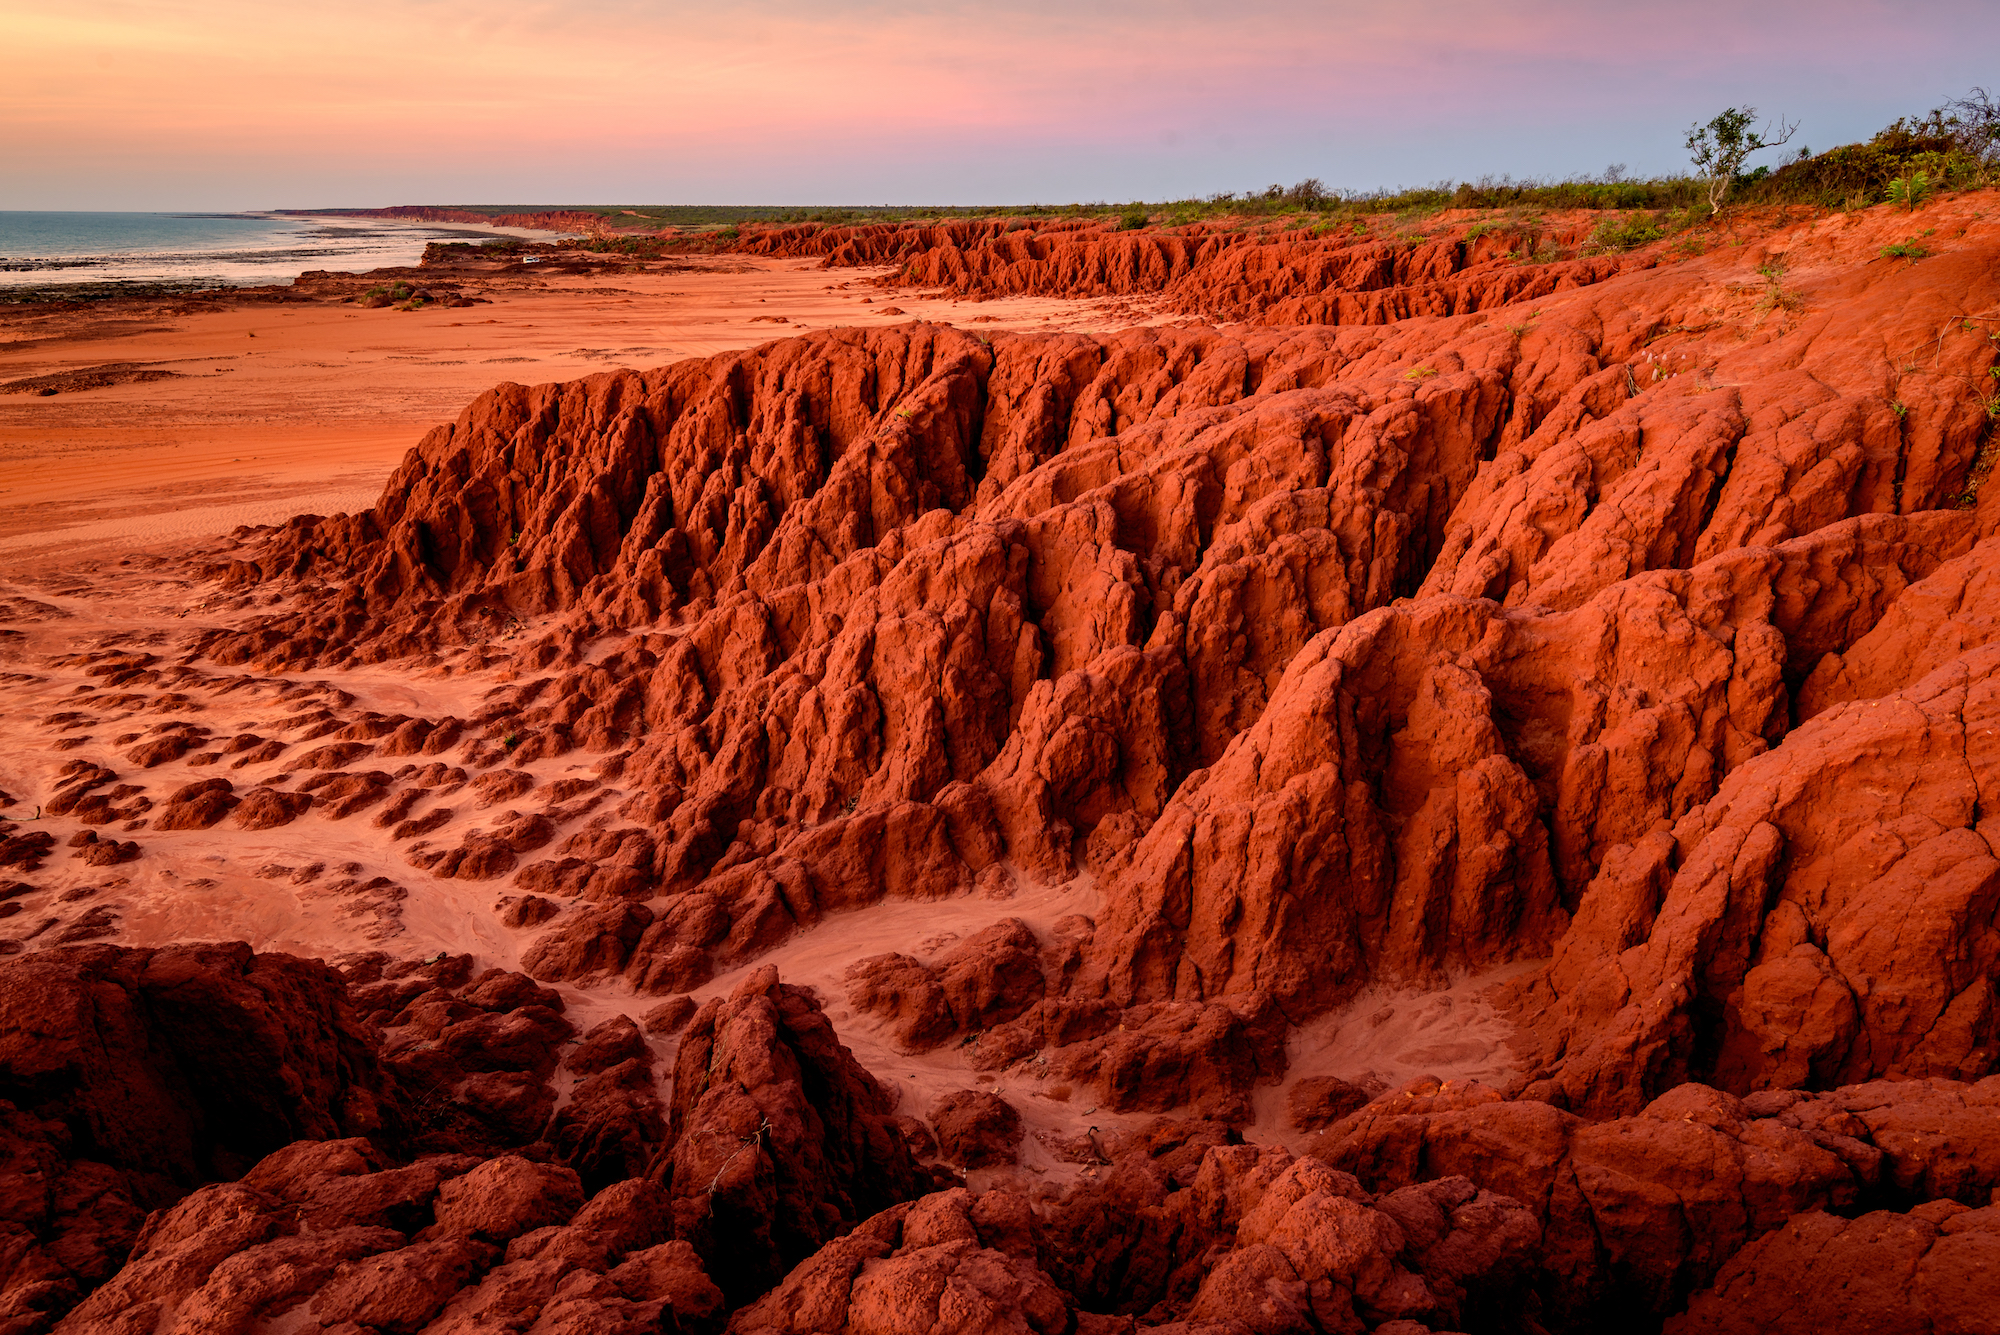 deep red, rocky cliffs stretch from the right side of the screen, melting into sandy beach and blue water